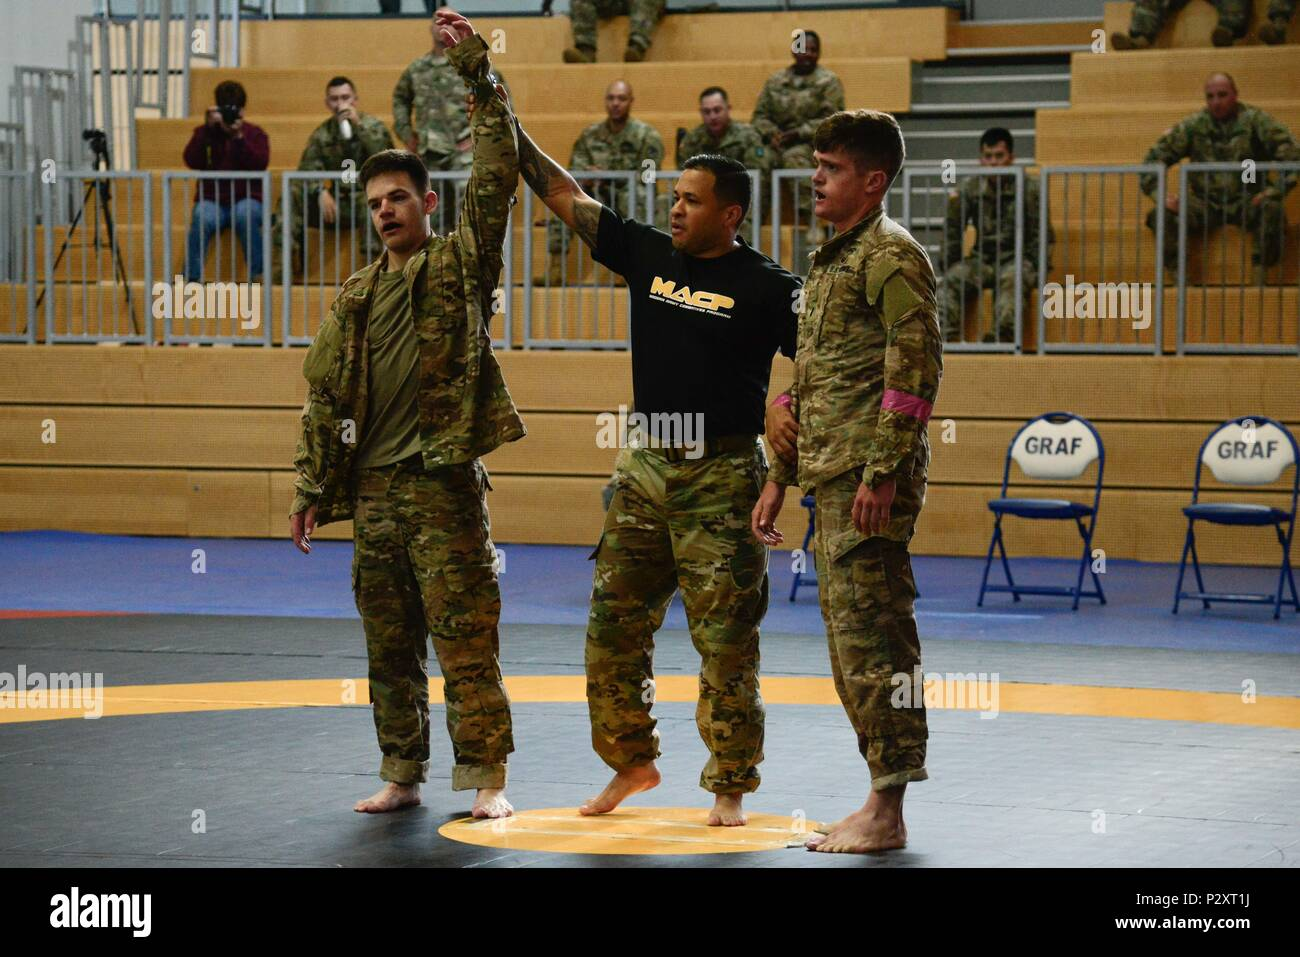 GRAFENWOEHR, Germany -- 2nd Lt. Justin Ganzer (left) of the 21st Theater Sustainment Command wins in the officer's combatives tournament Aug. 11 during the 2016 European Best Warrior Competition held at the 7th Army Training Command's Grafenwoehr Training Area. The intense, grueling annual weeklong competition is the most prestigious competitive event of the region. (U.S. Army Photo by Pfc. Emily Houdershieldt) - Stock Image